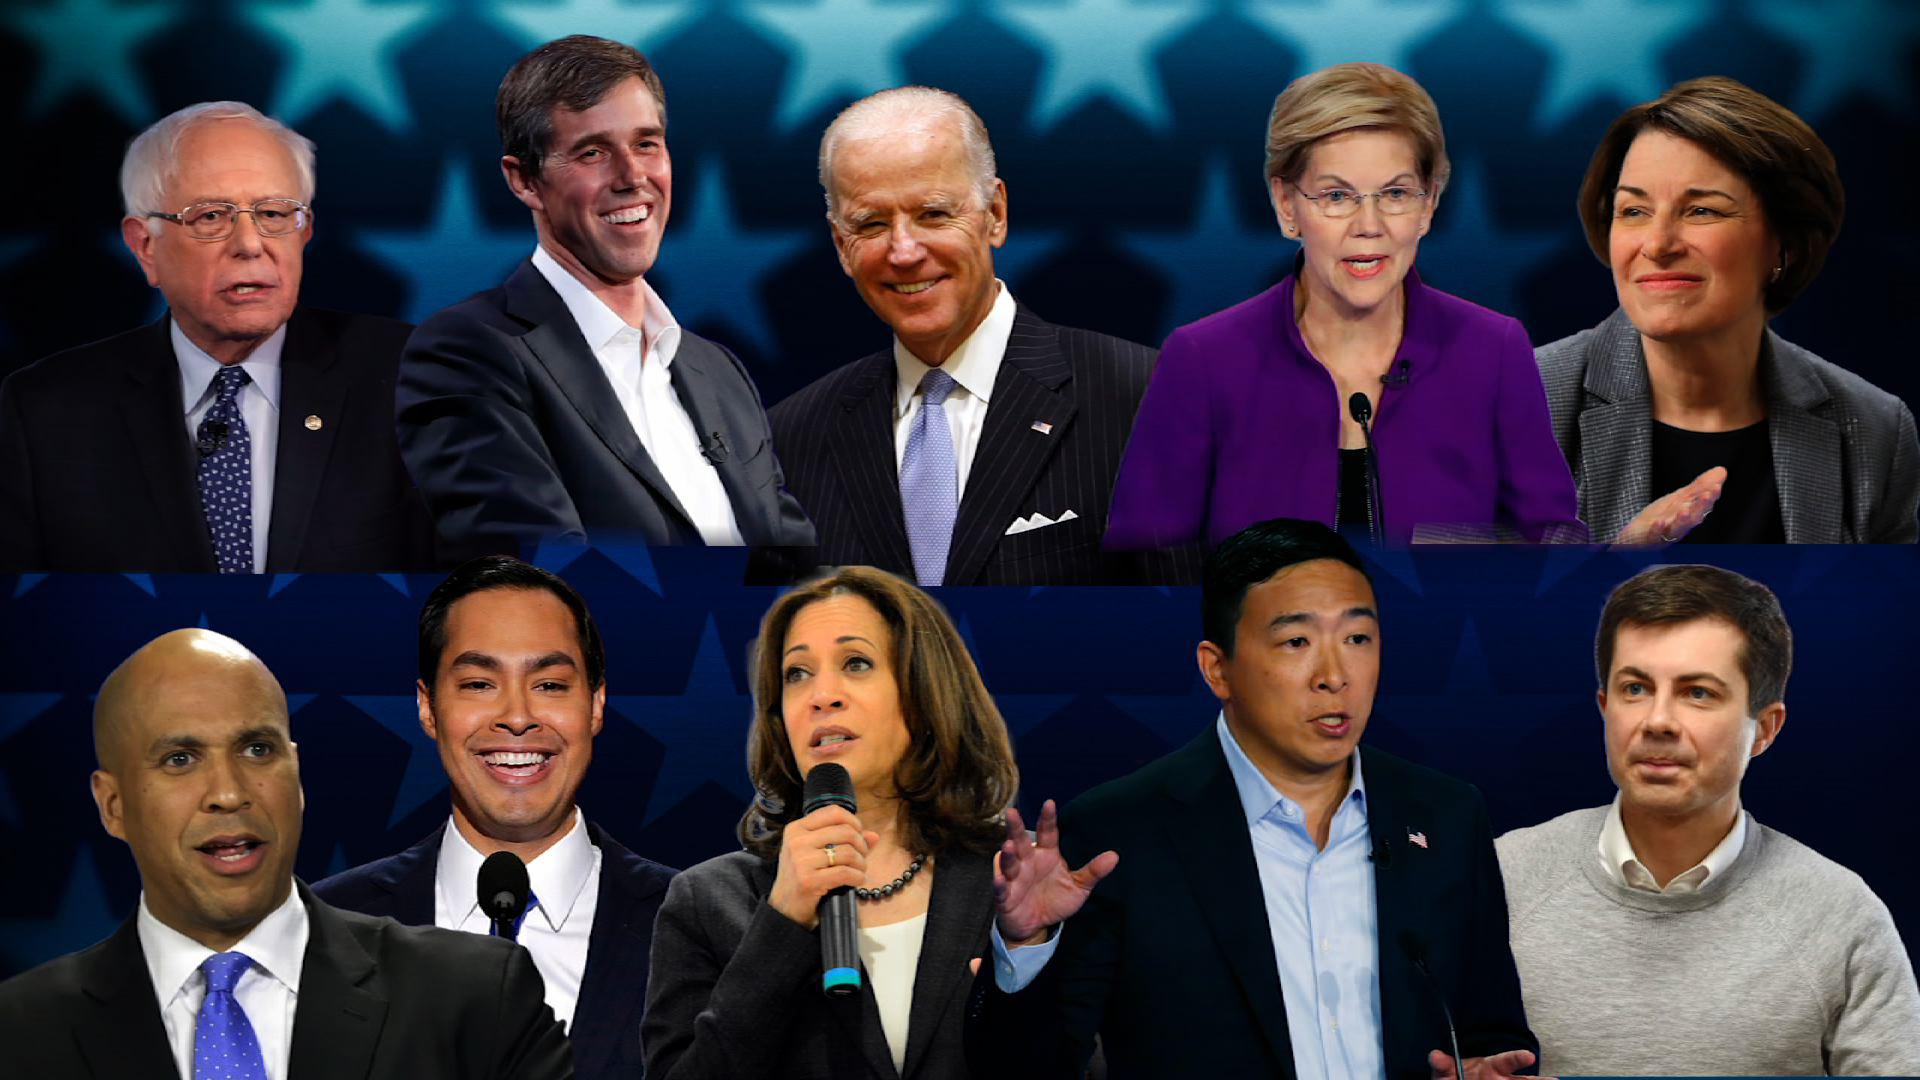 Winners and losers from the third Democratic presidential debate